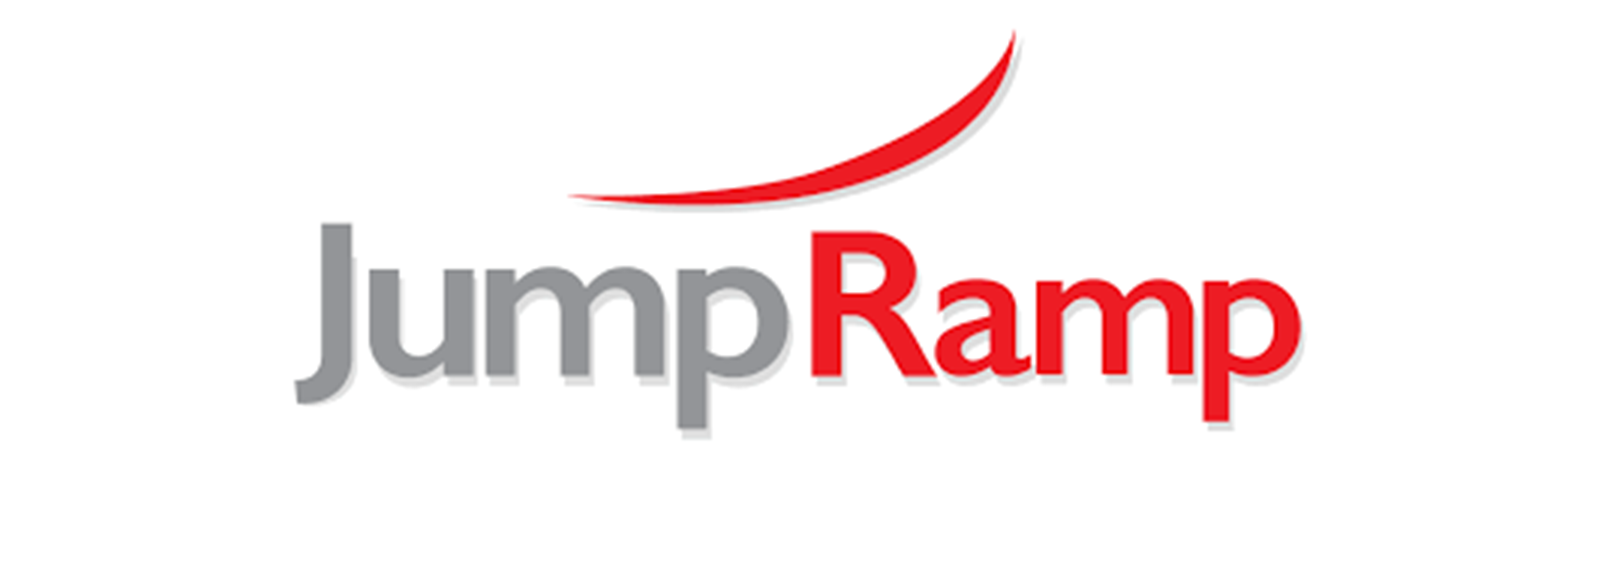 0_1_0000s_0037_Jump-Ramp.png